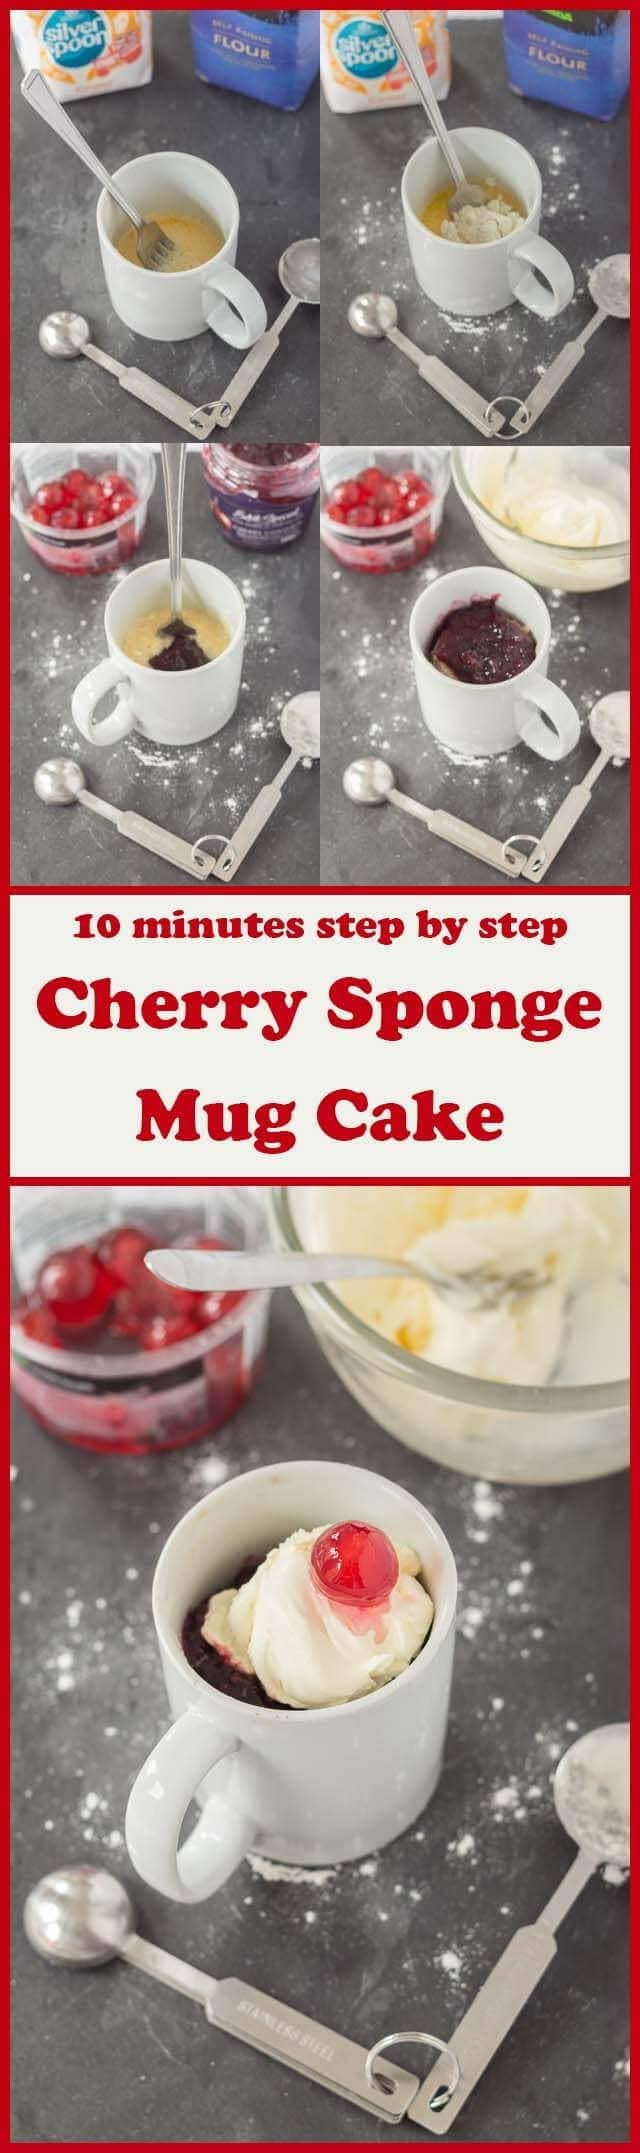 Cherry sponge mug cake is a delicious sweet combination of fruit flavours that just takes 10 minutes to make. This is a perfect pudding treat for when you have very little time but crave the combination of something a little naughty!